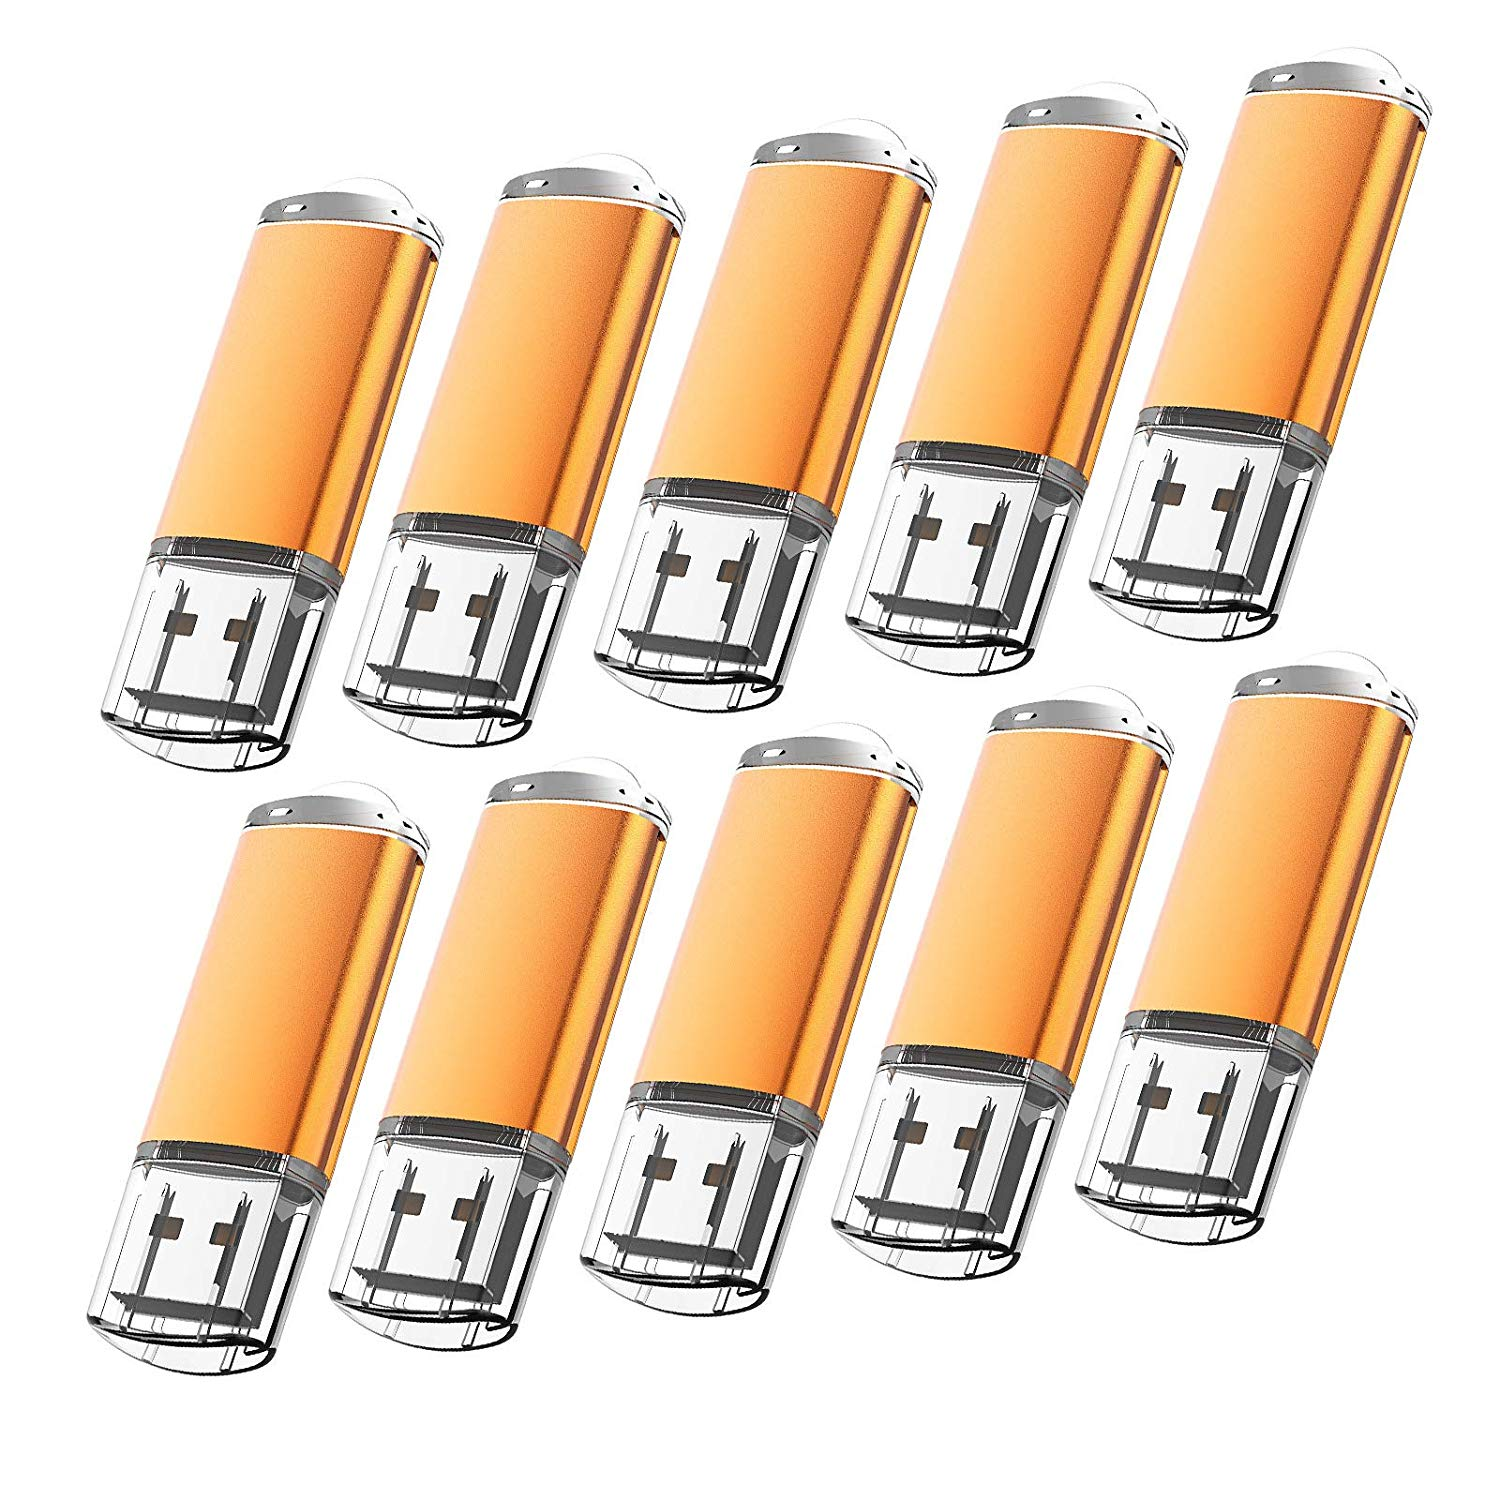 KOOTION 10Pack 1GB USB Flash Drive Memory Stick Fold Storage Thumb Pen Drive Swivel, Orange